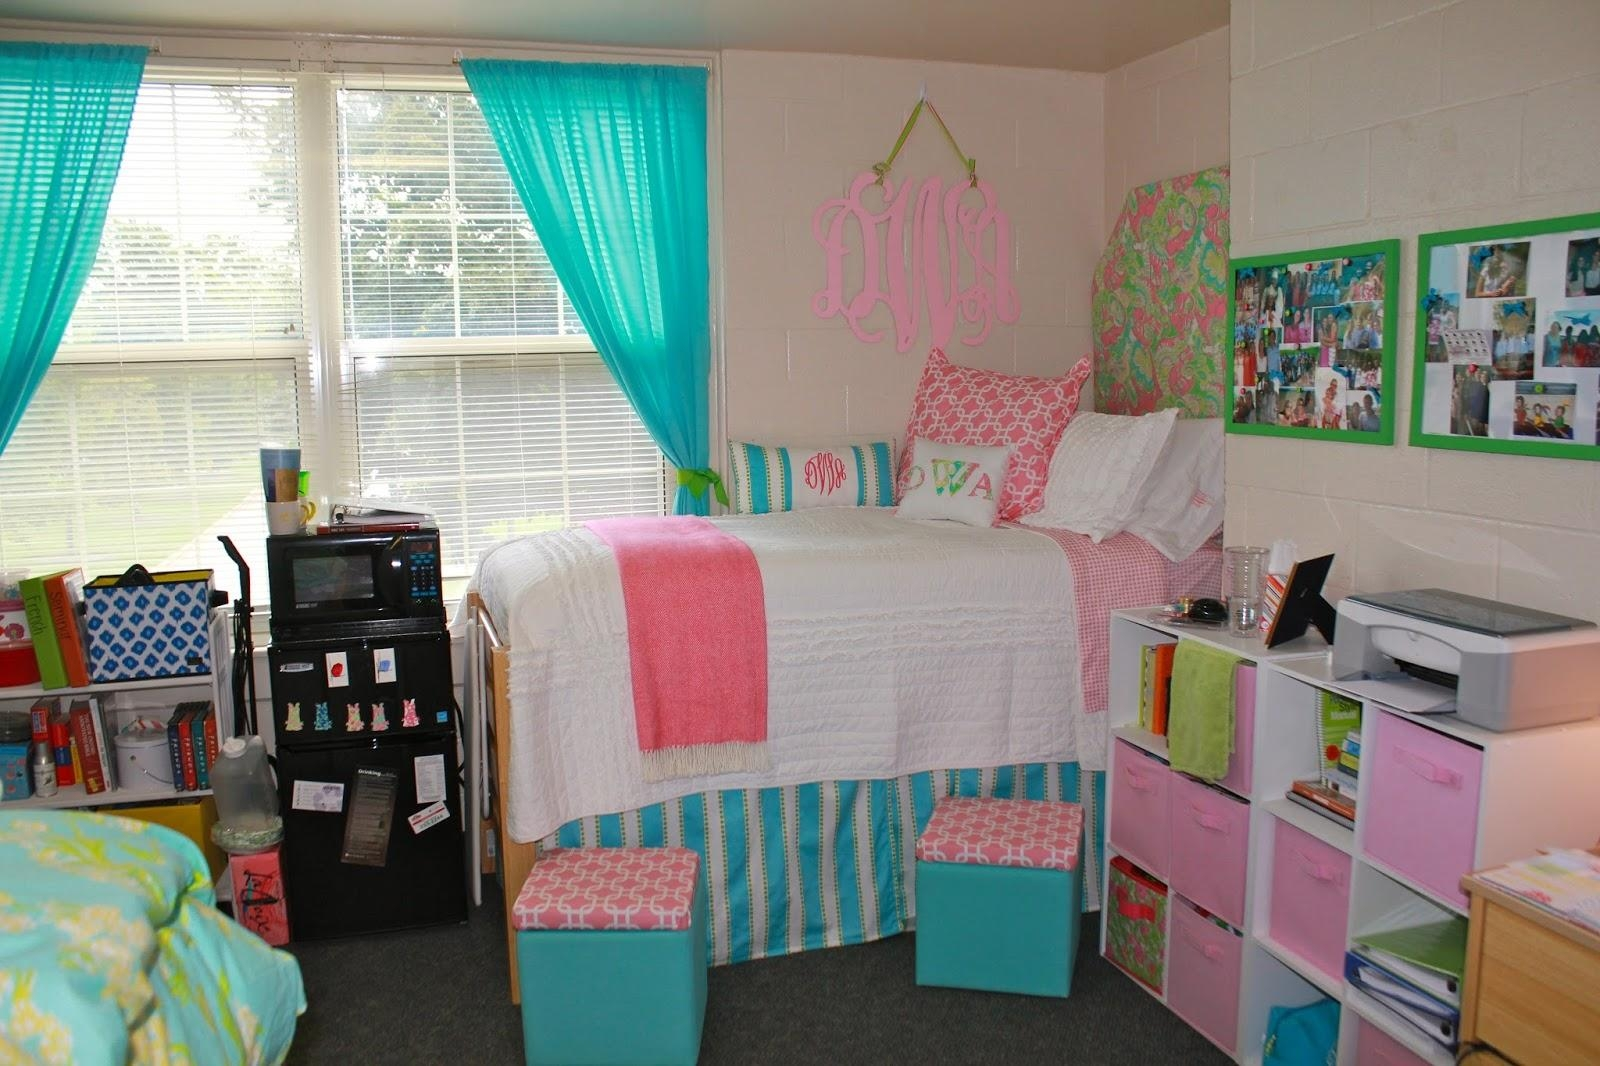 Prep In Your Step: My Dorm Room Throughout Wall Art For College Dorms (Image 20 of 20)